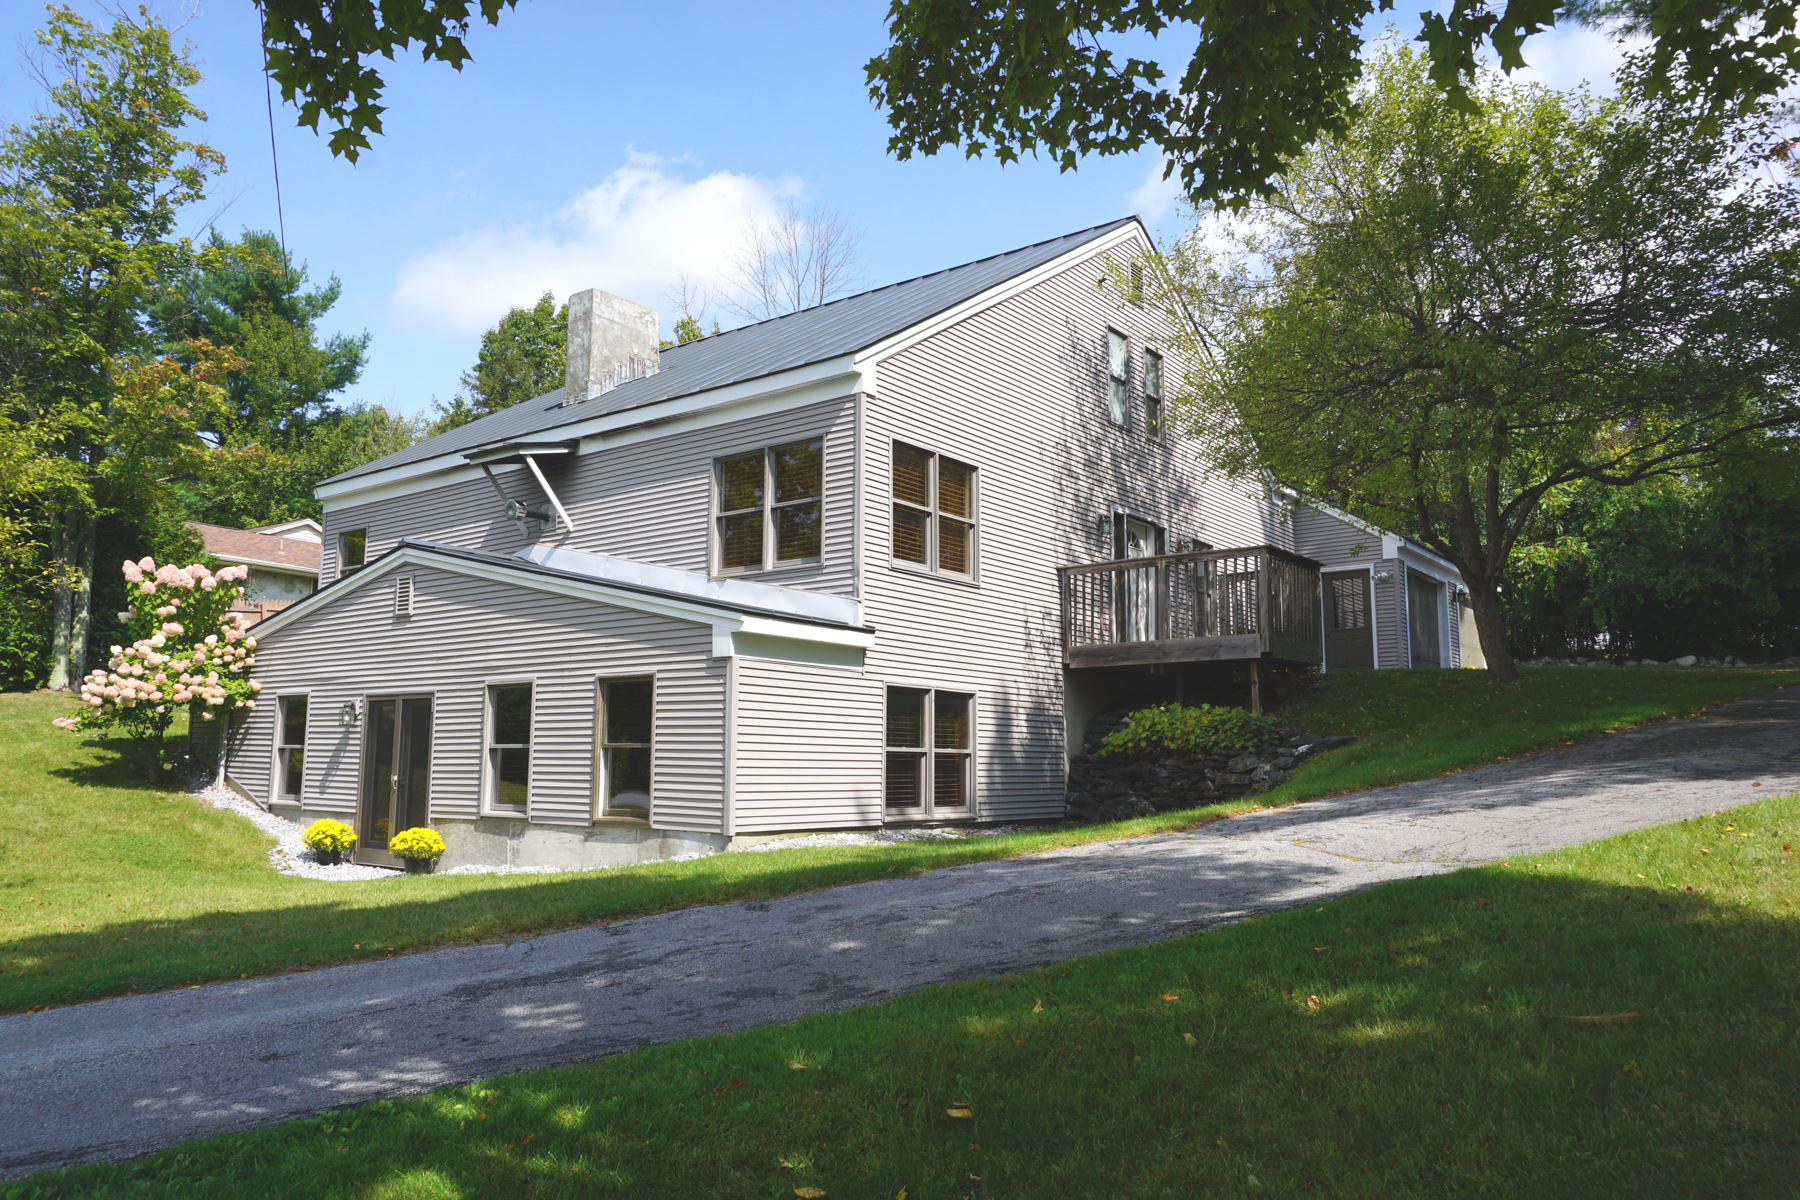 Single Family Homes for Sale at BEAUTIFUL CONTEMPORARY HOME 14 Hilltop Terrace Rutland, Vermont 05701 United States